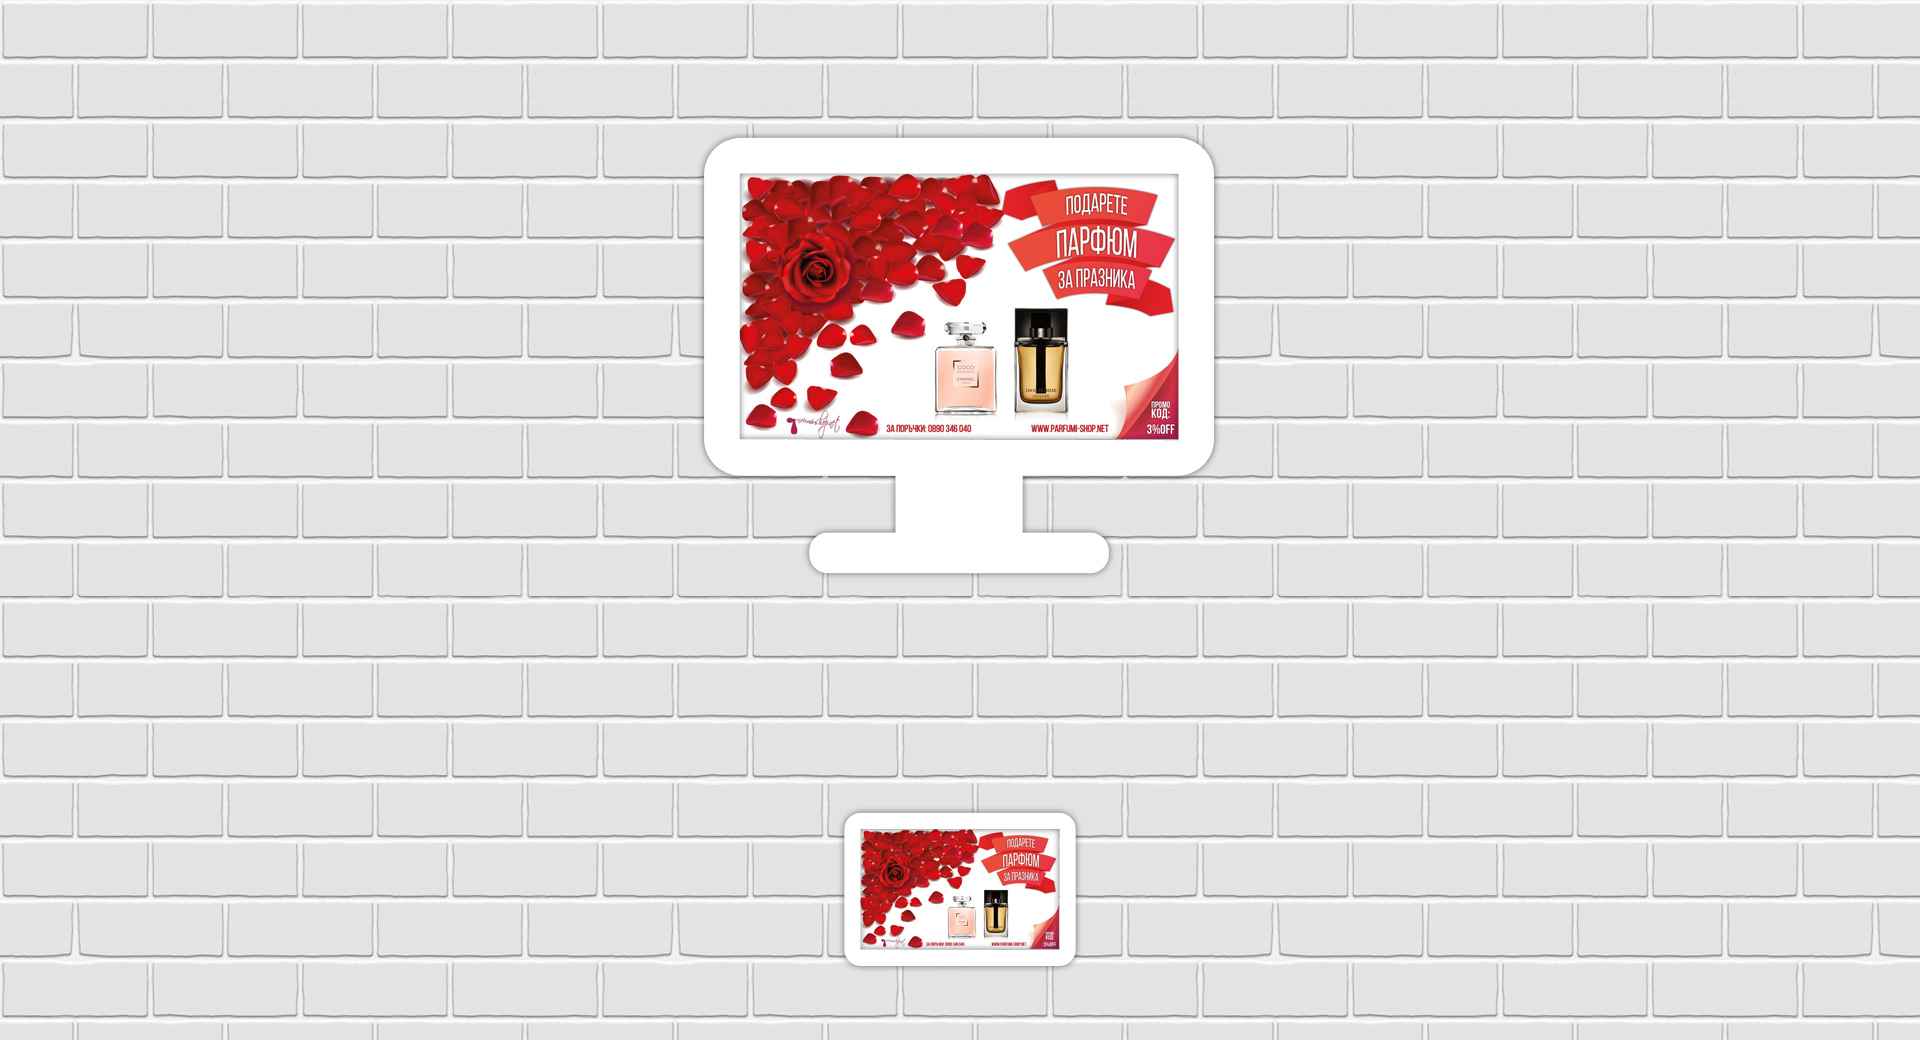 Parfumi Shop Valentines day Banner Design 14 February